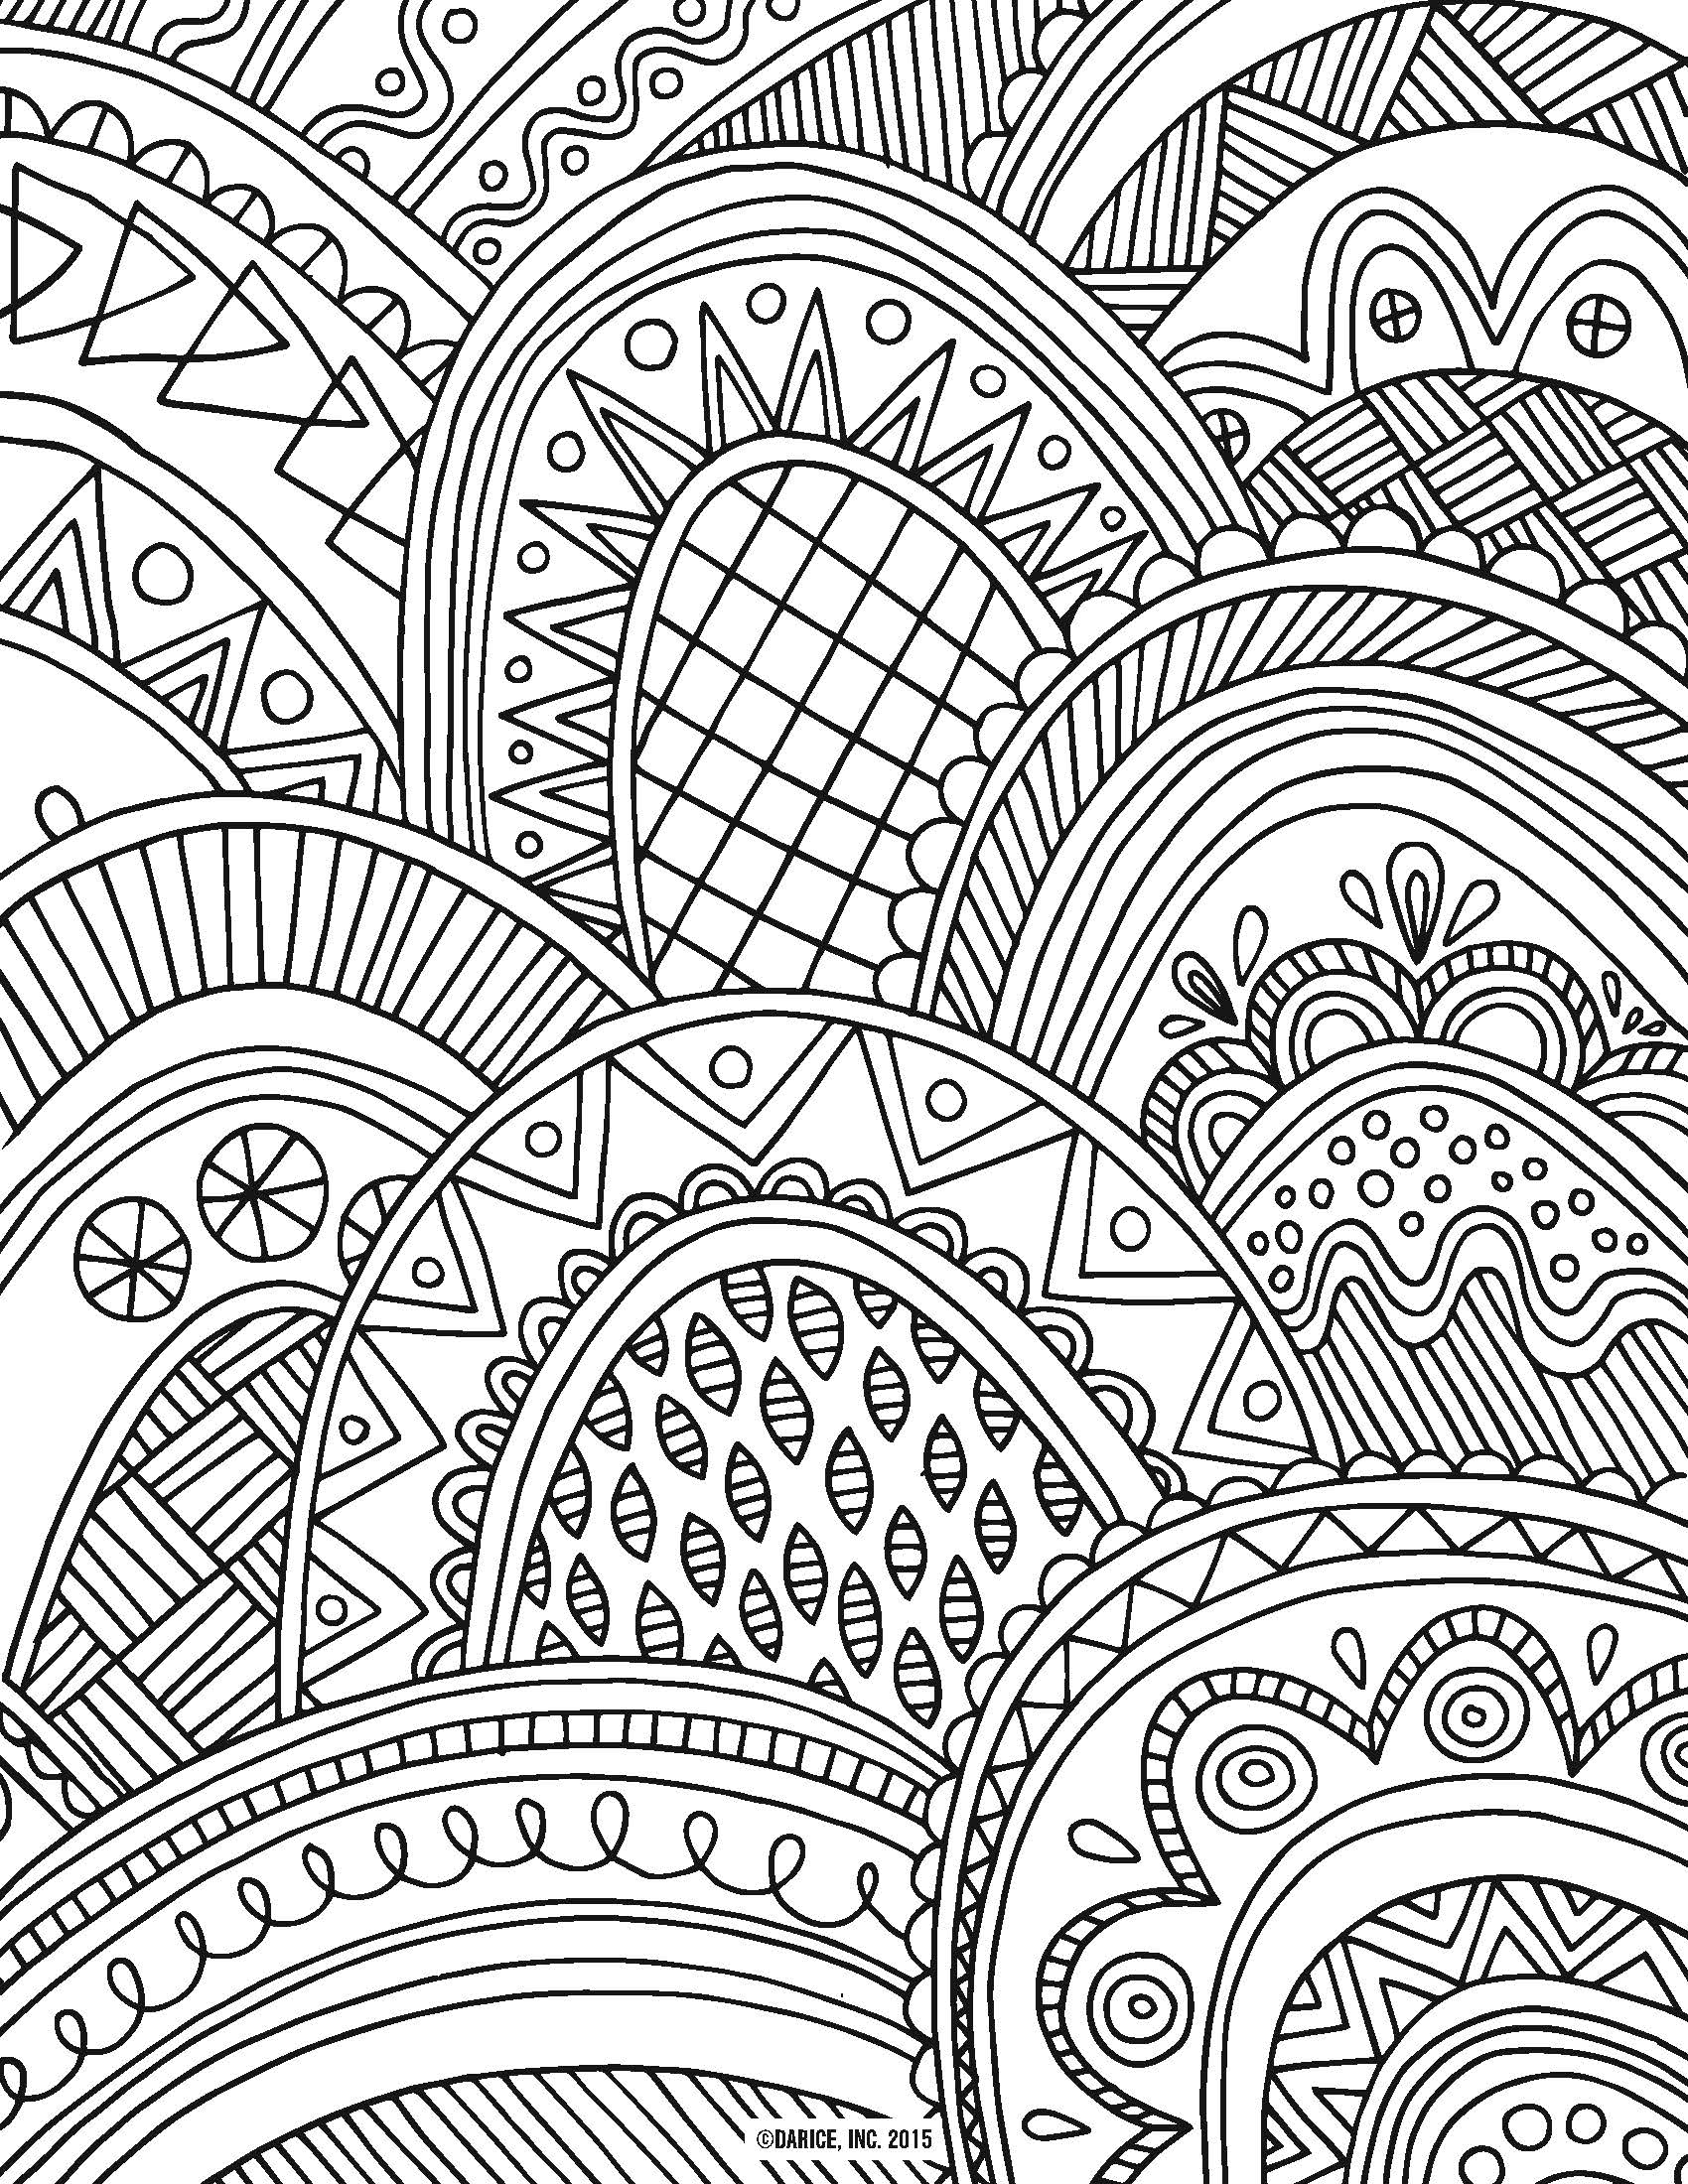 coloring pages to color online 10 free printable holiday adult coloring pages color coloring pages to online